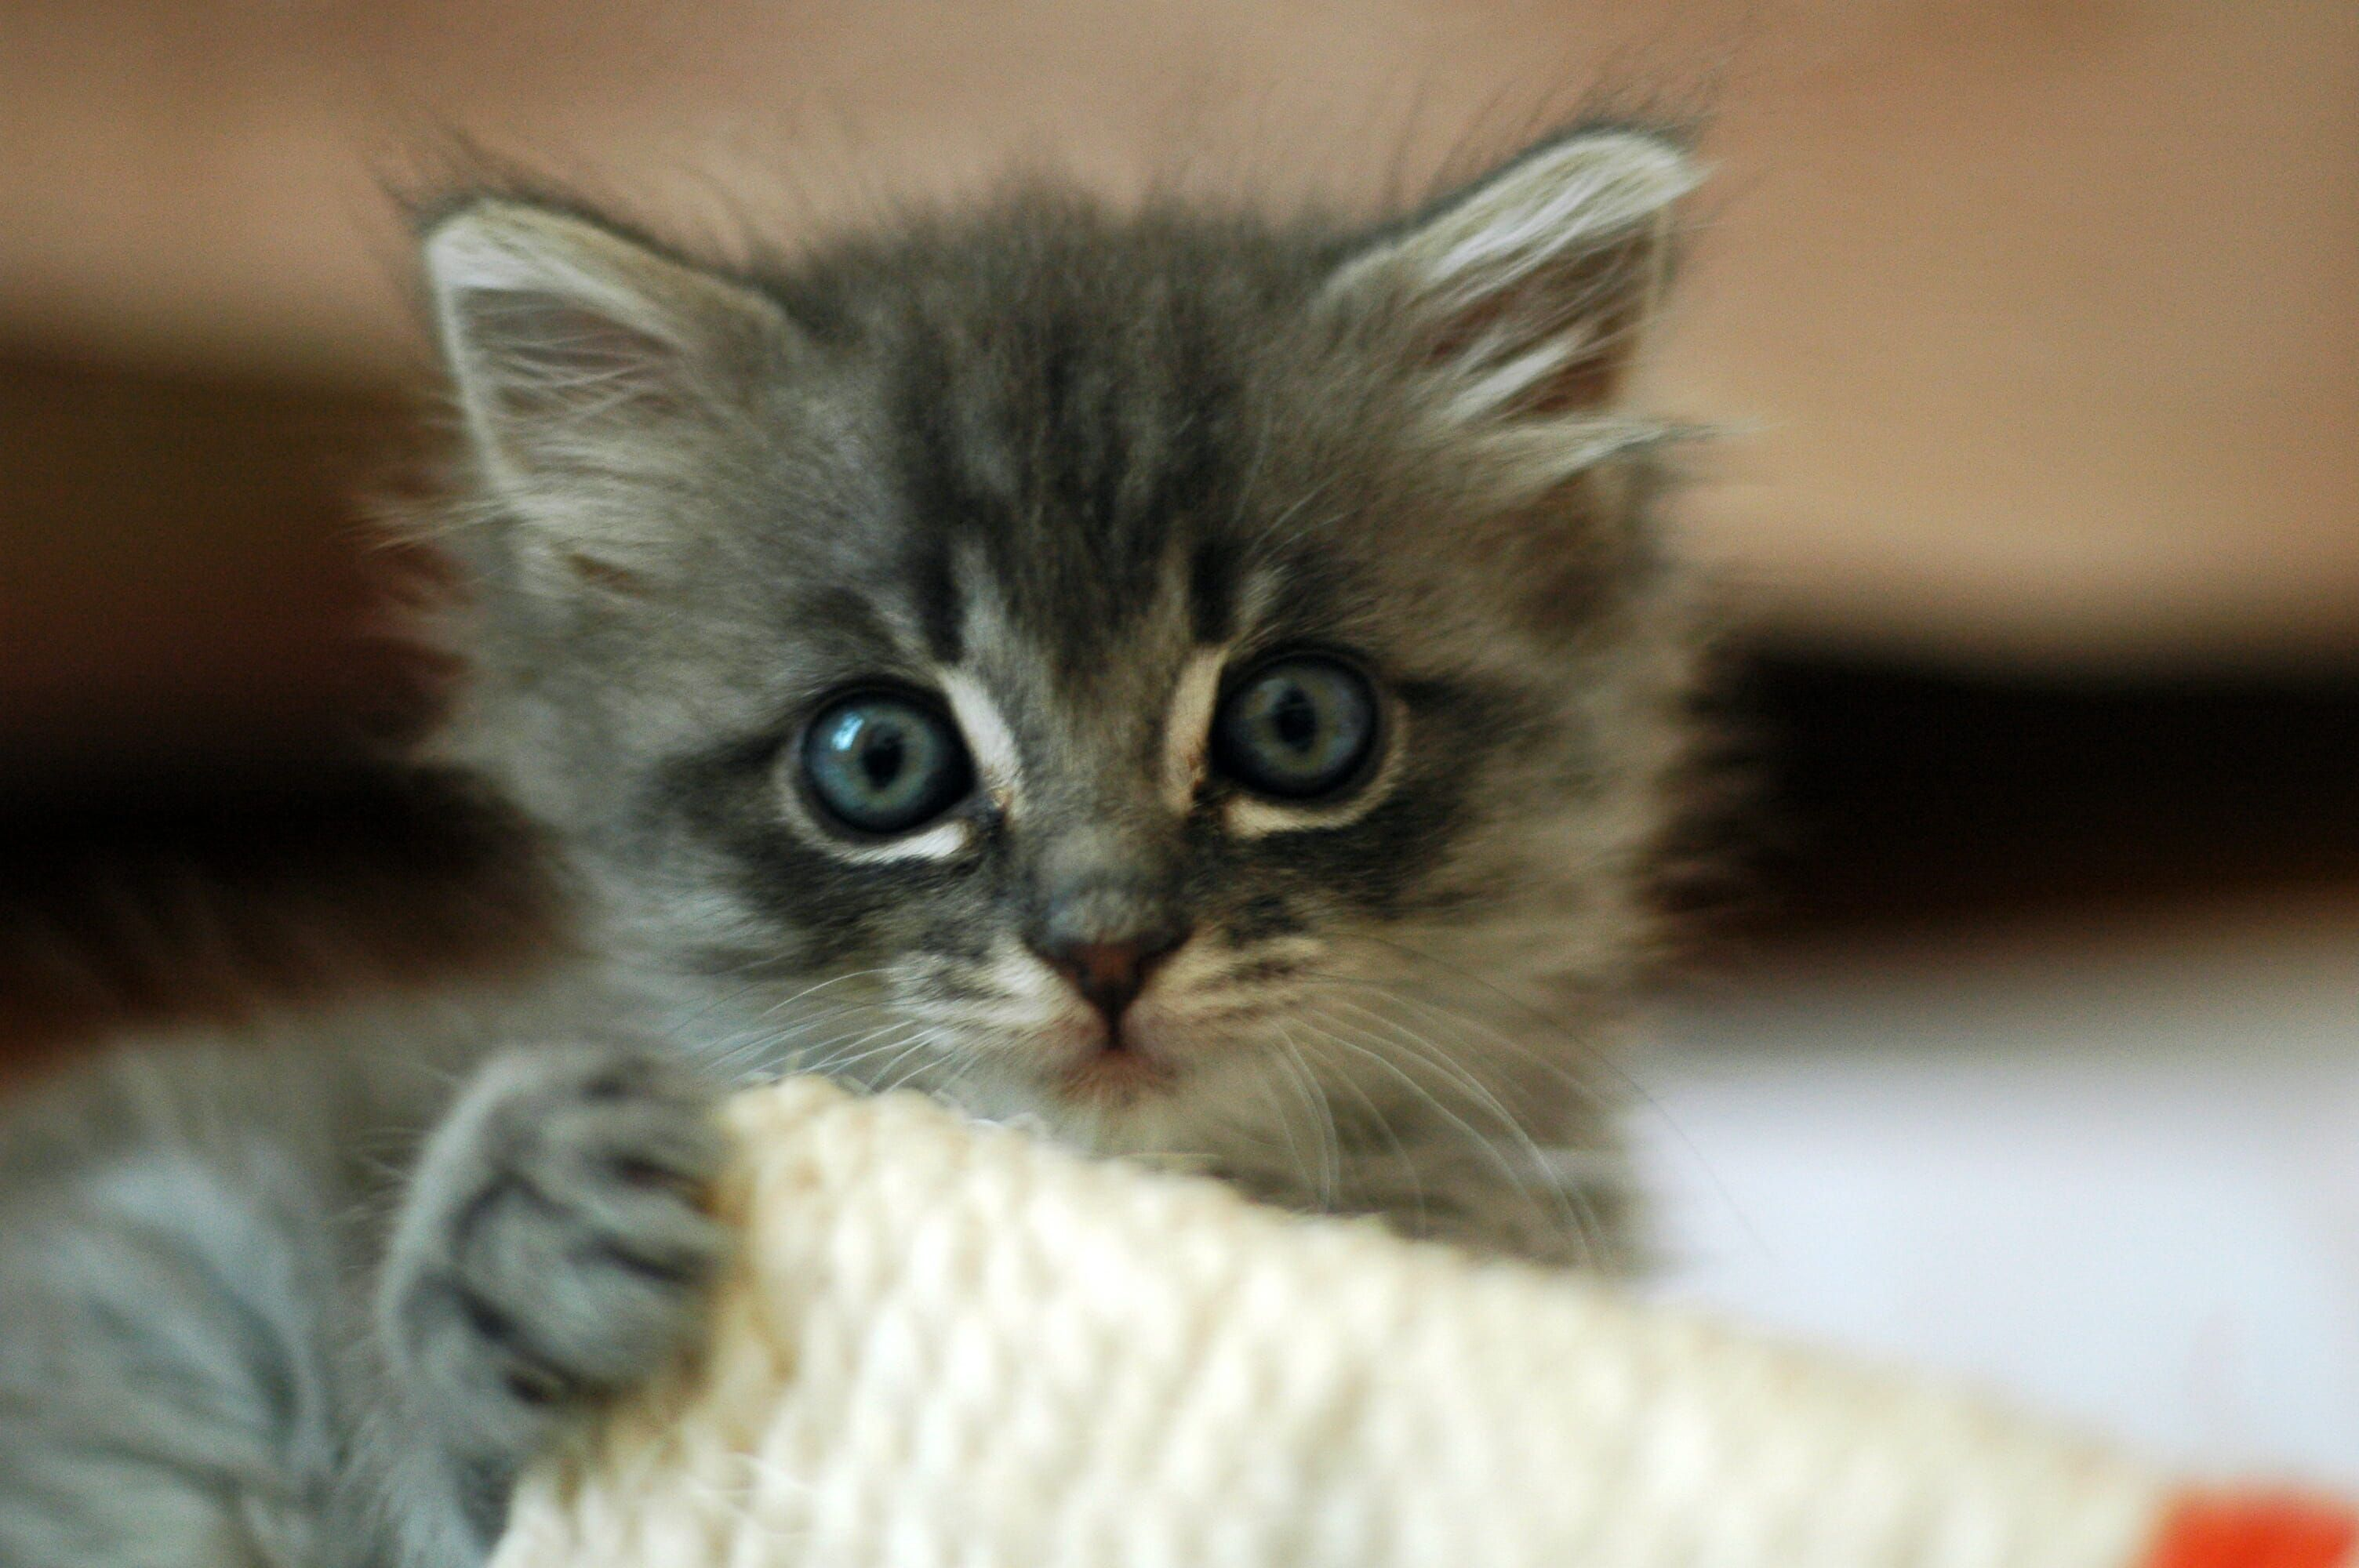 Close up of a particularly cute abandoned kitten. The May Spay challenge aims to reduce the number of feral kittens that need to be put down.